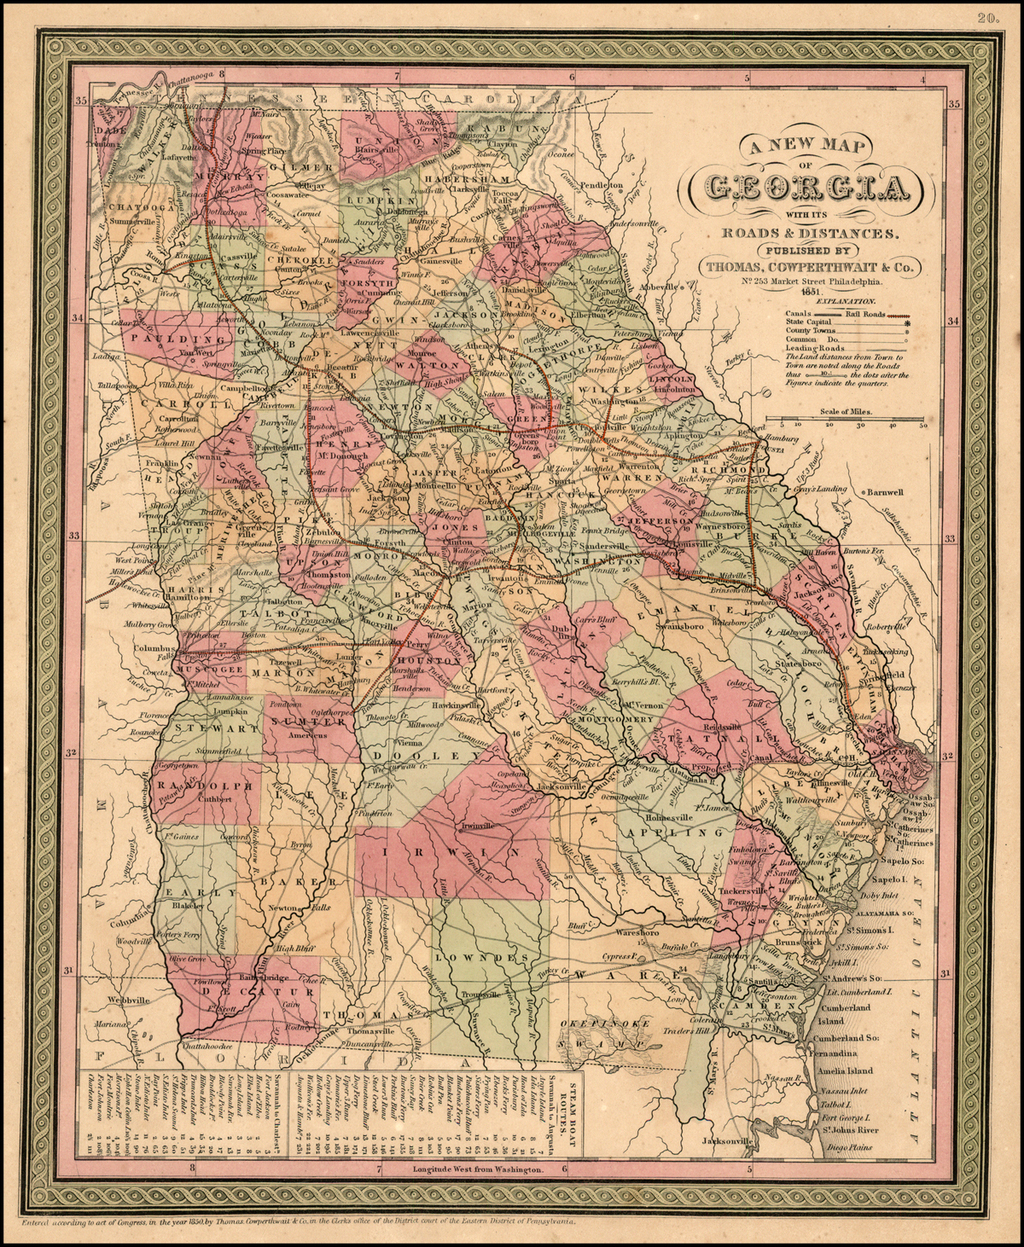 A New Map of Georgia with its Roads & Distances .  .  . 1851 By Thomas, Cowperthwait & Co.